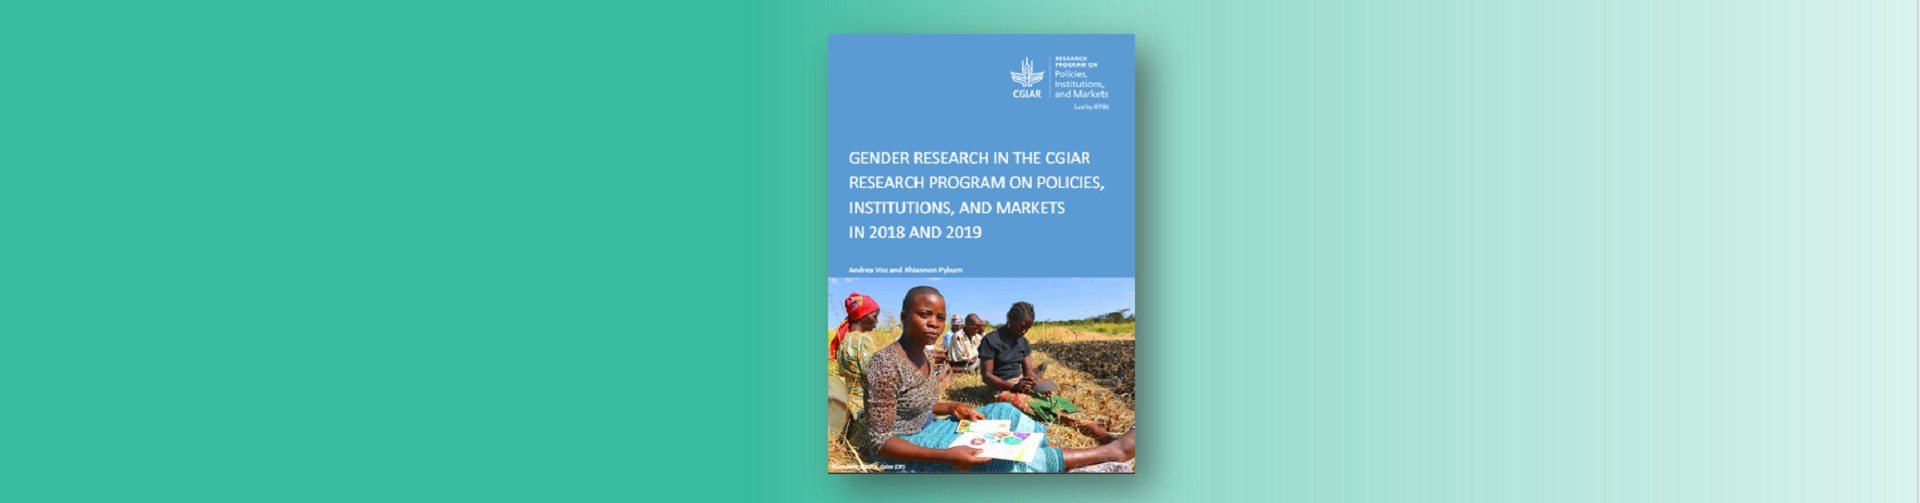 Report: Gender research in PIM in 2018-2019